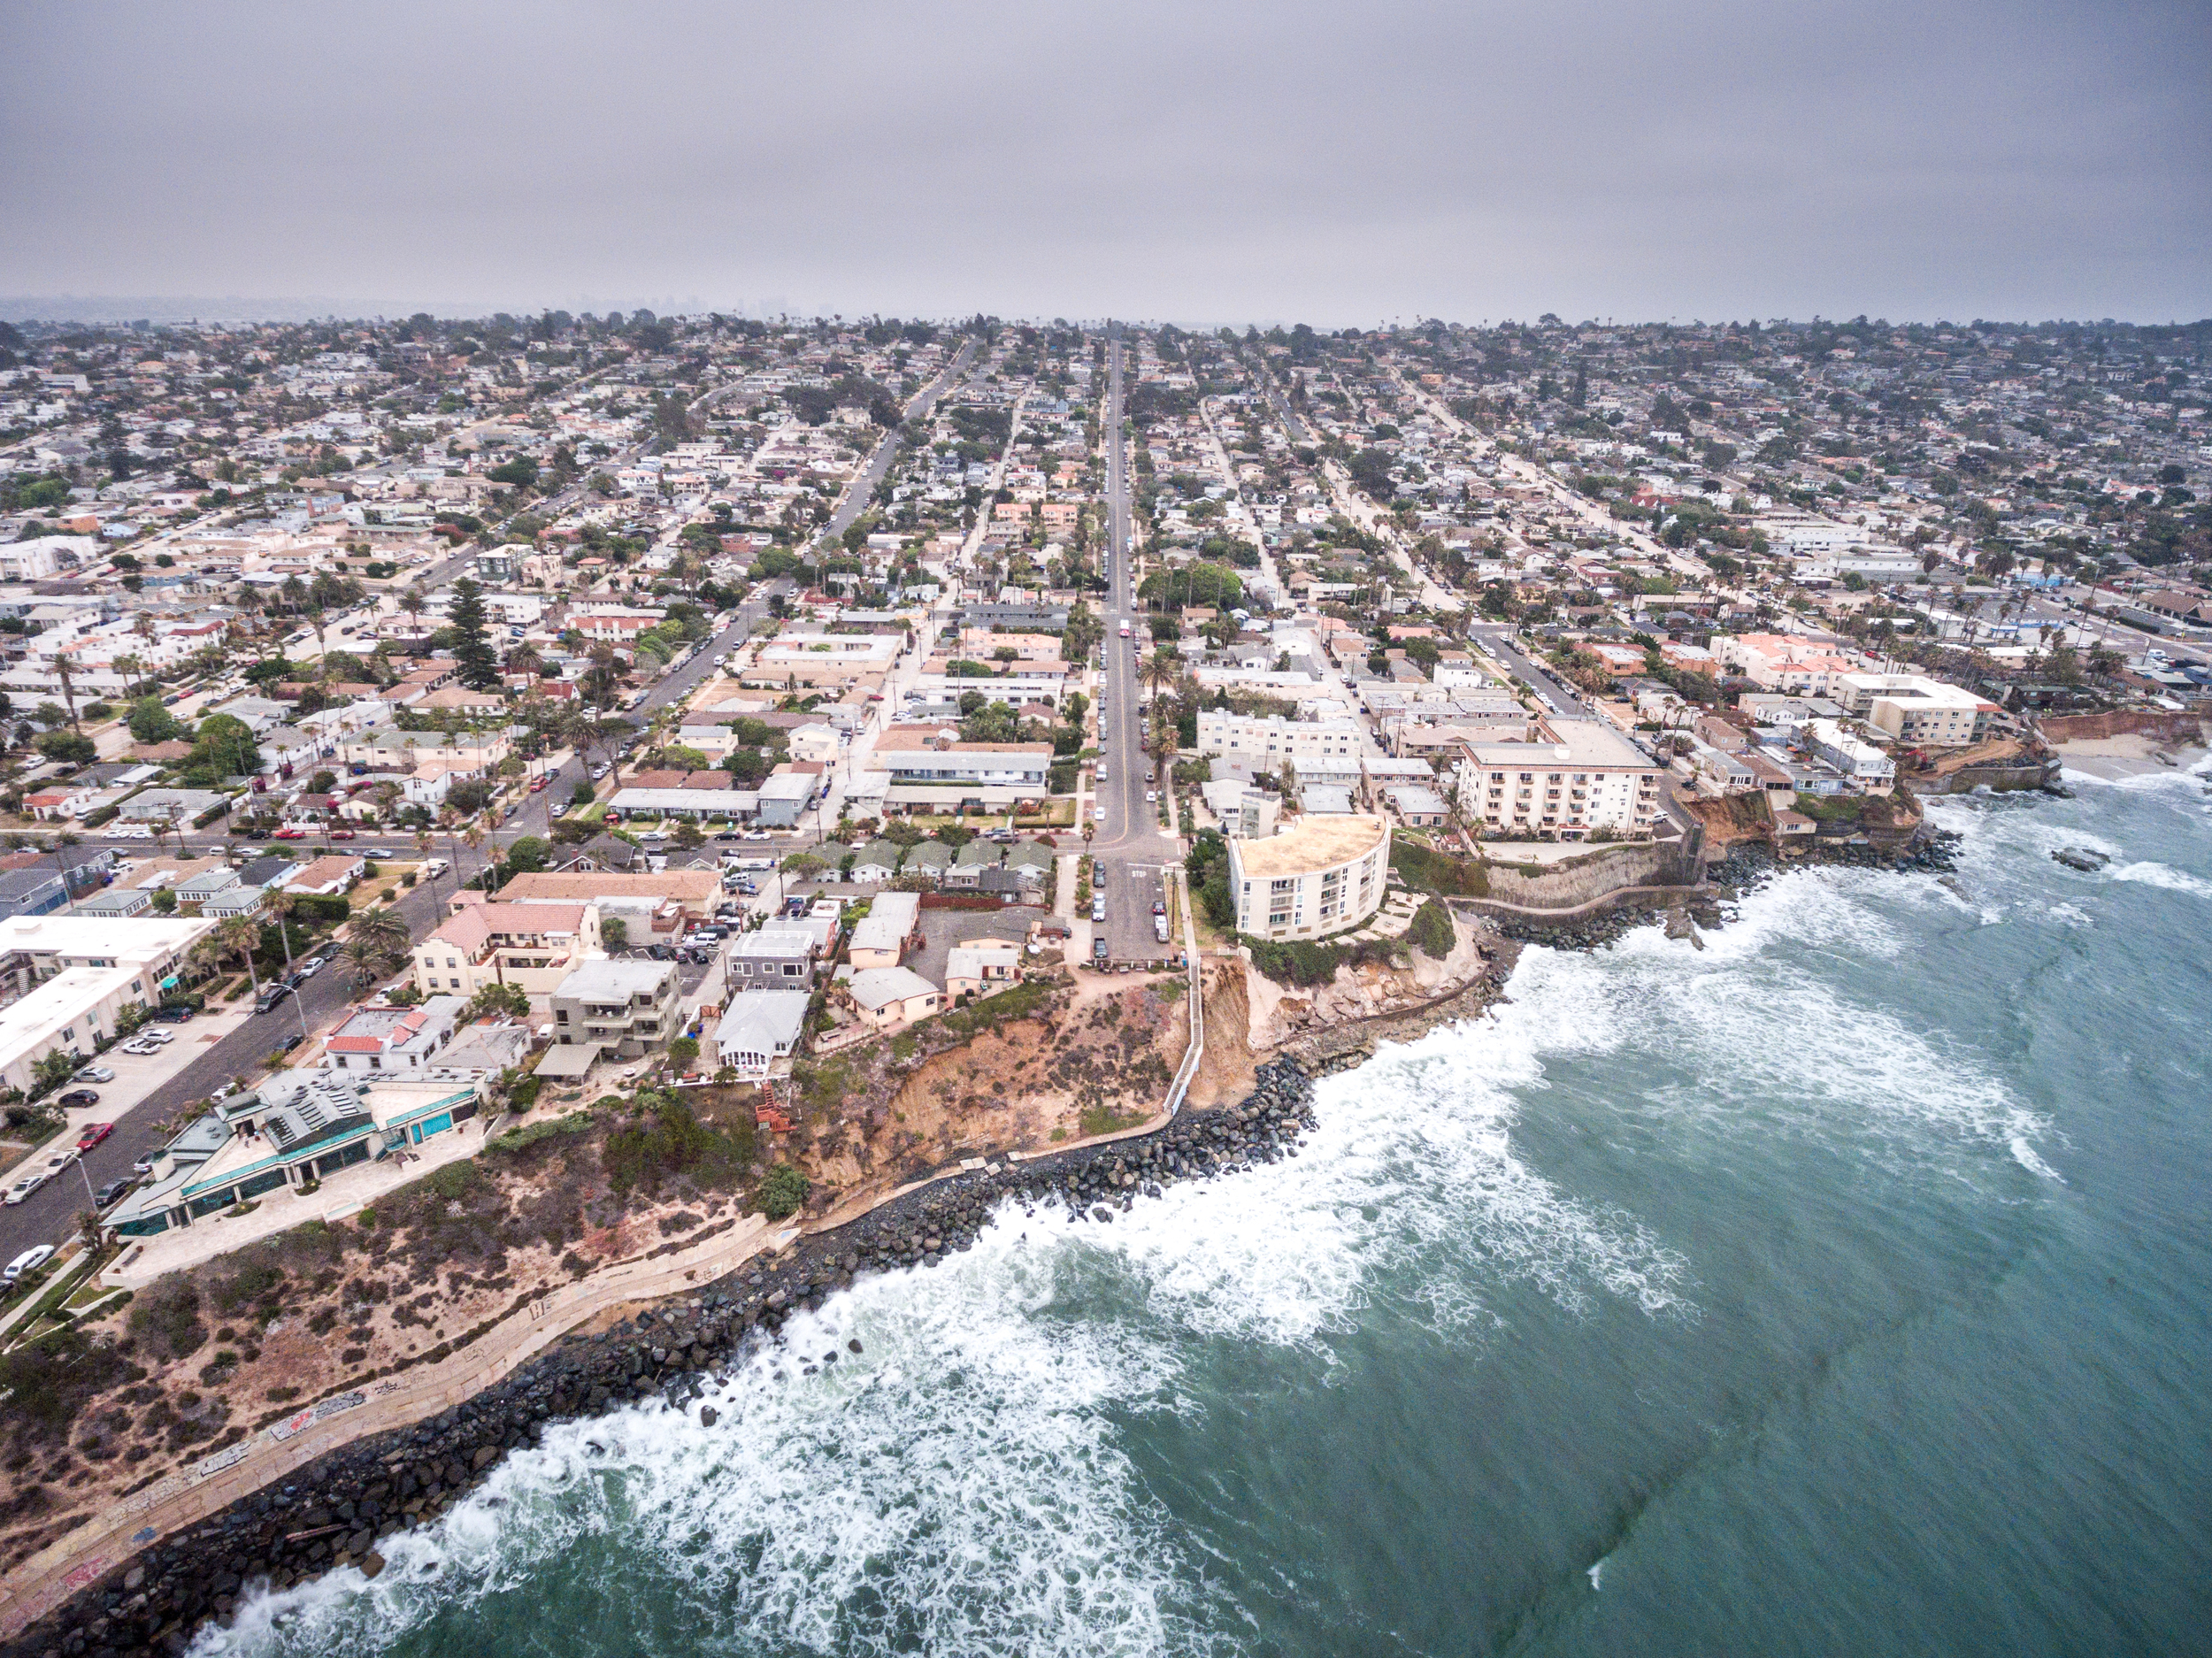 DJI_0008_CALIFORNIA_SANDIEGO_COAST_AERIAL.jpg